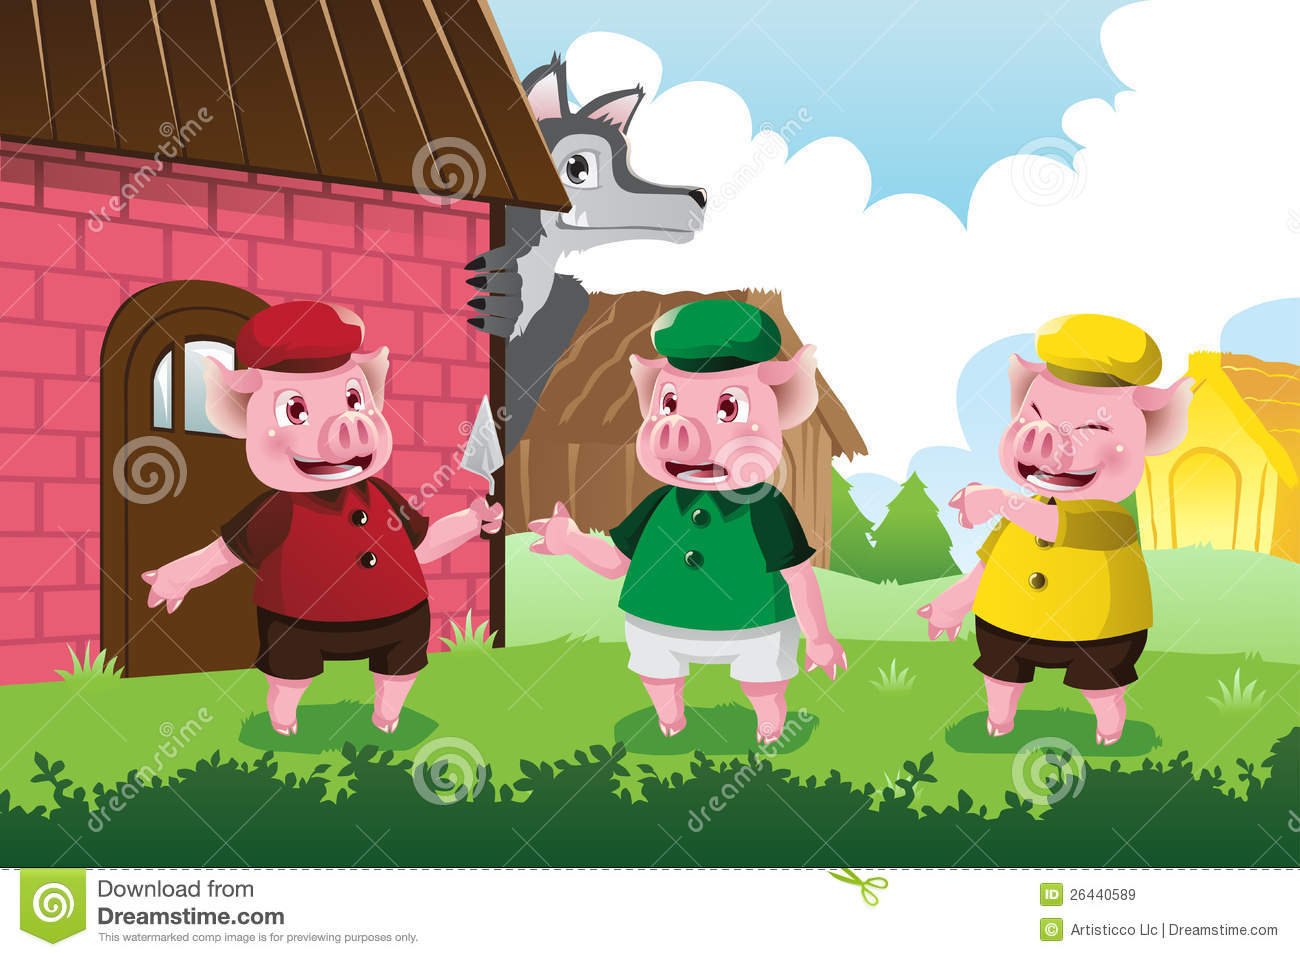 Wolf And Three Little Pigs Royalty Free Stock Images - Image: 26440589